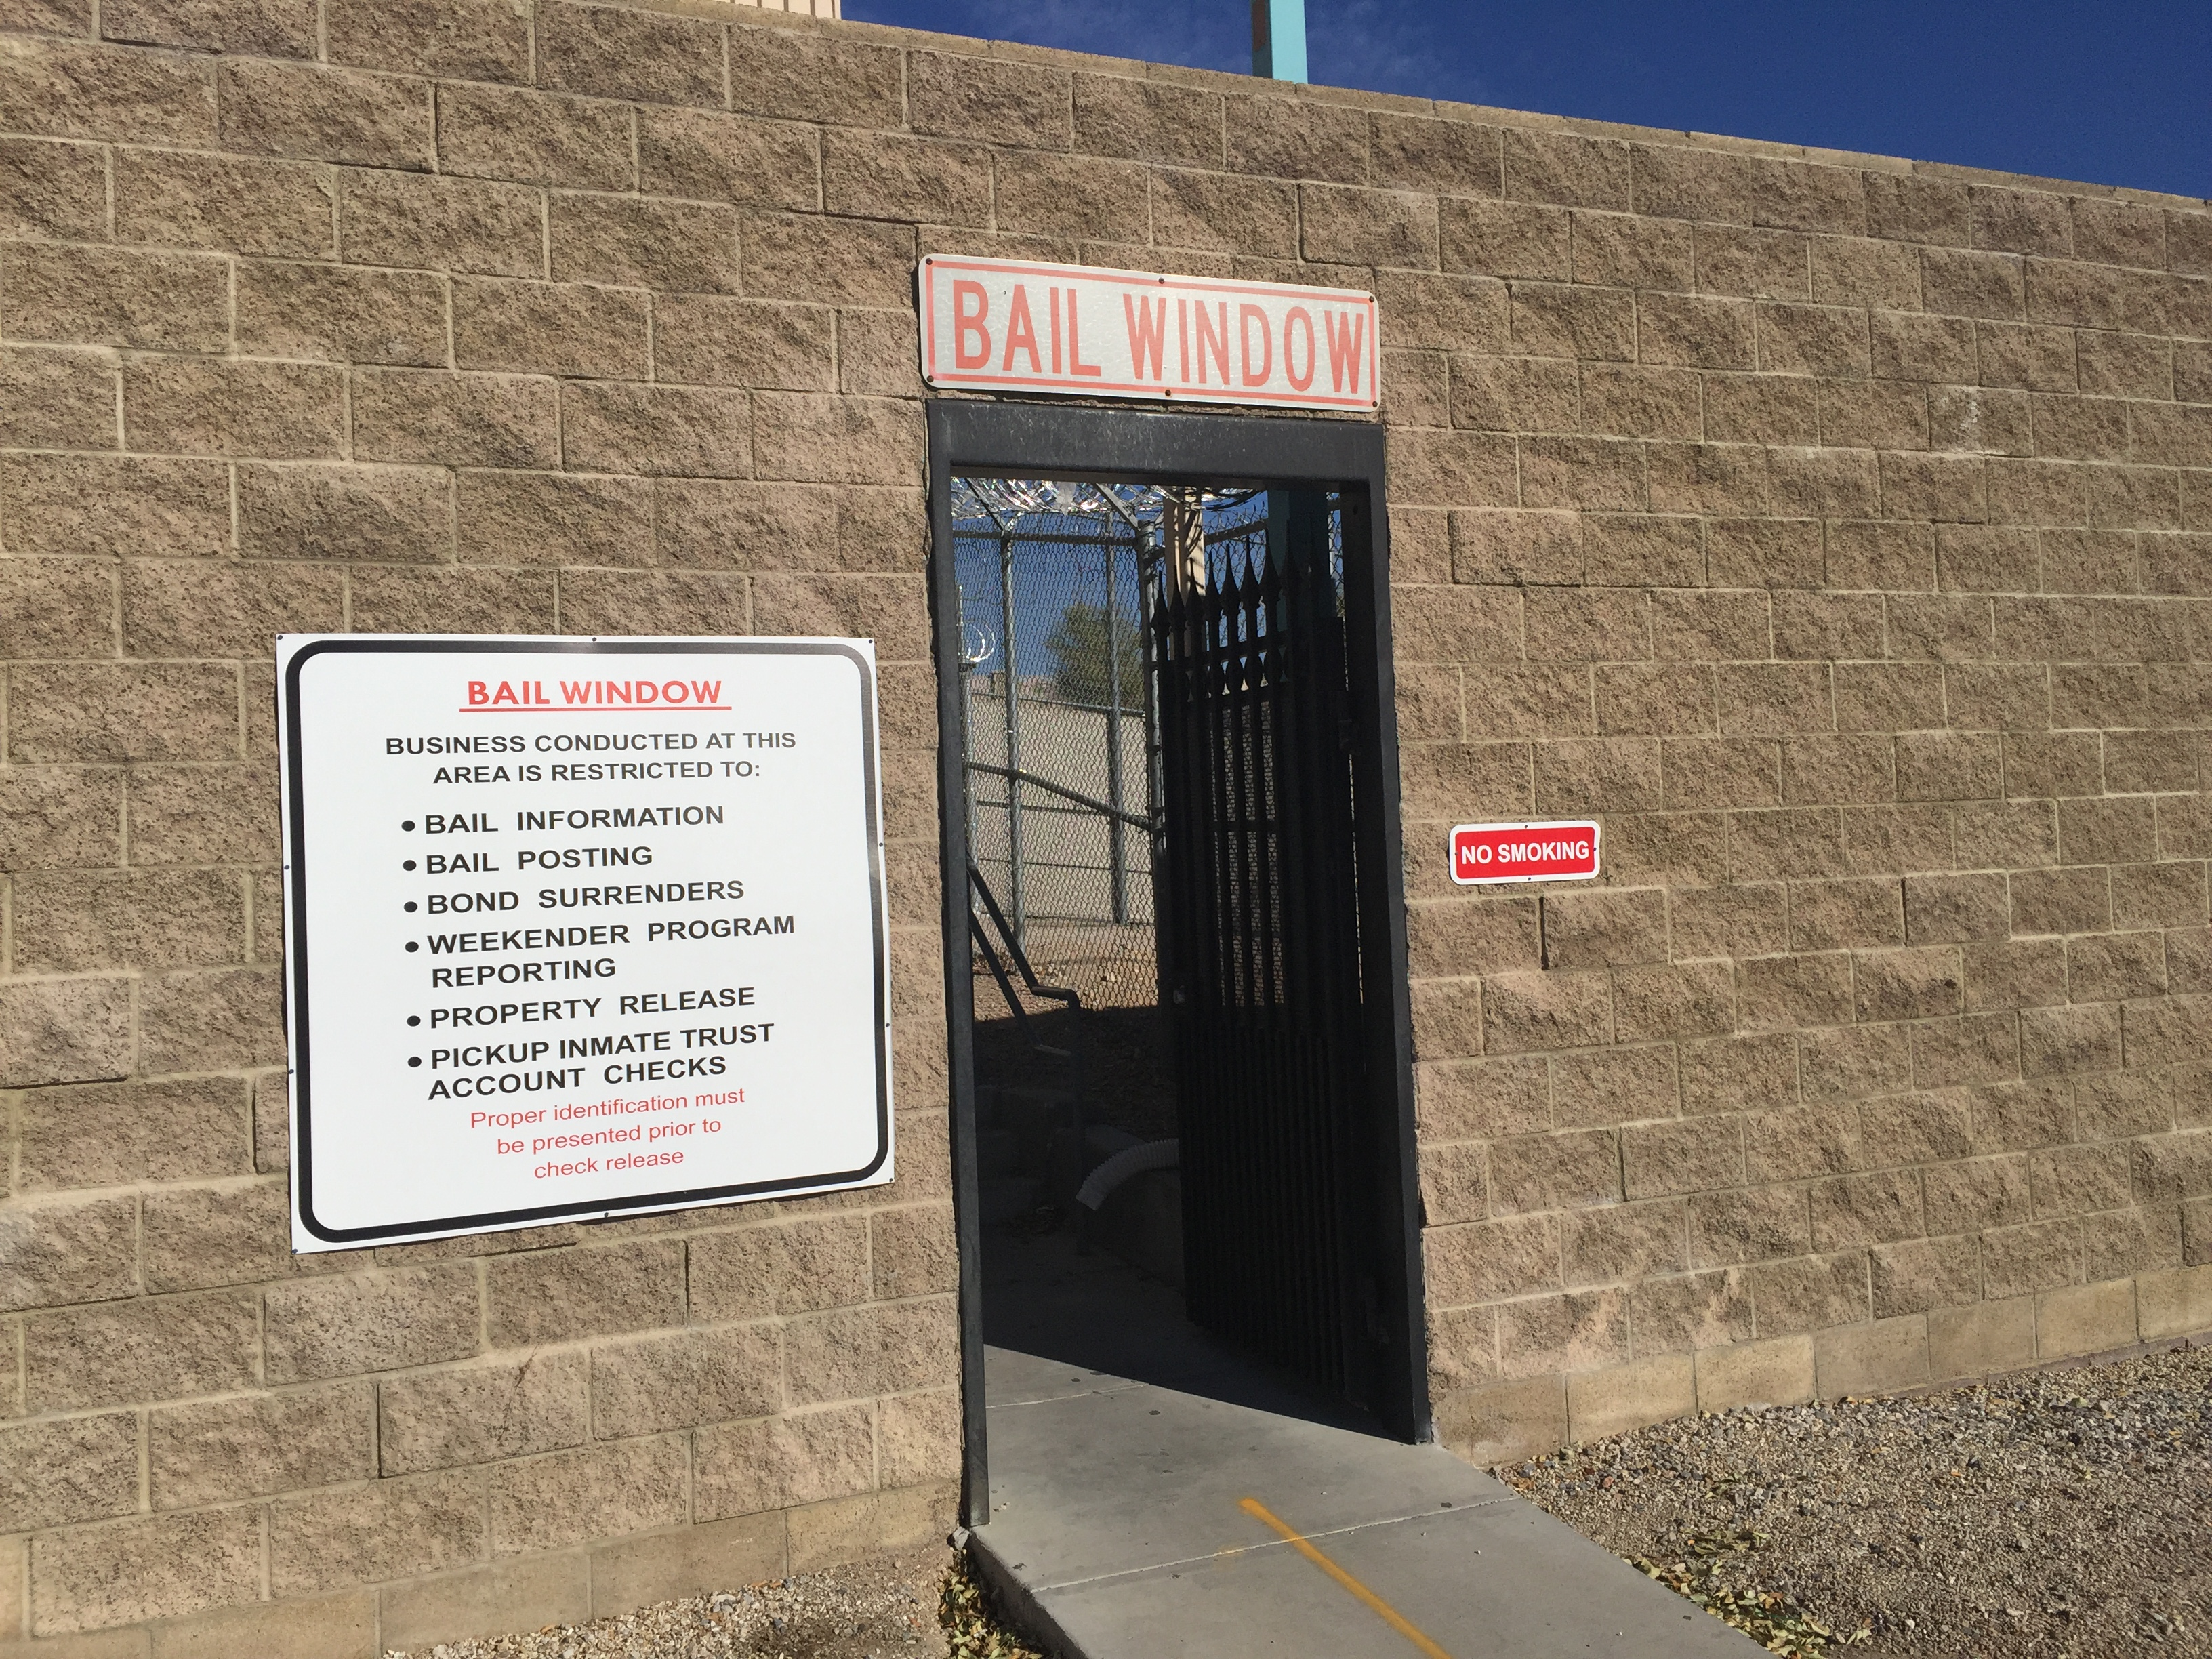 North Las Vegas Detention Center Bail Window